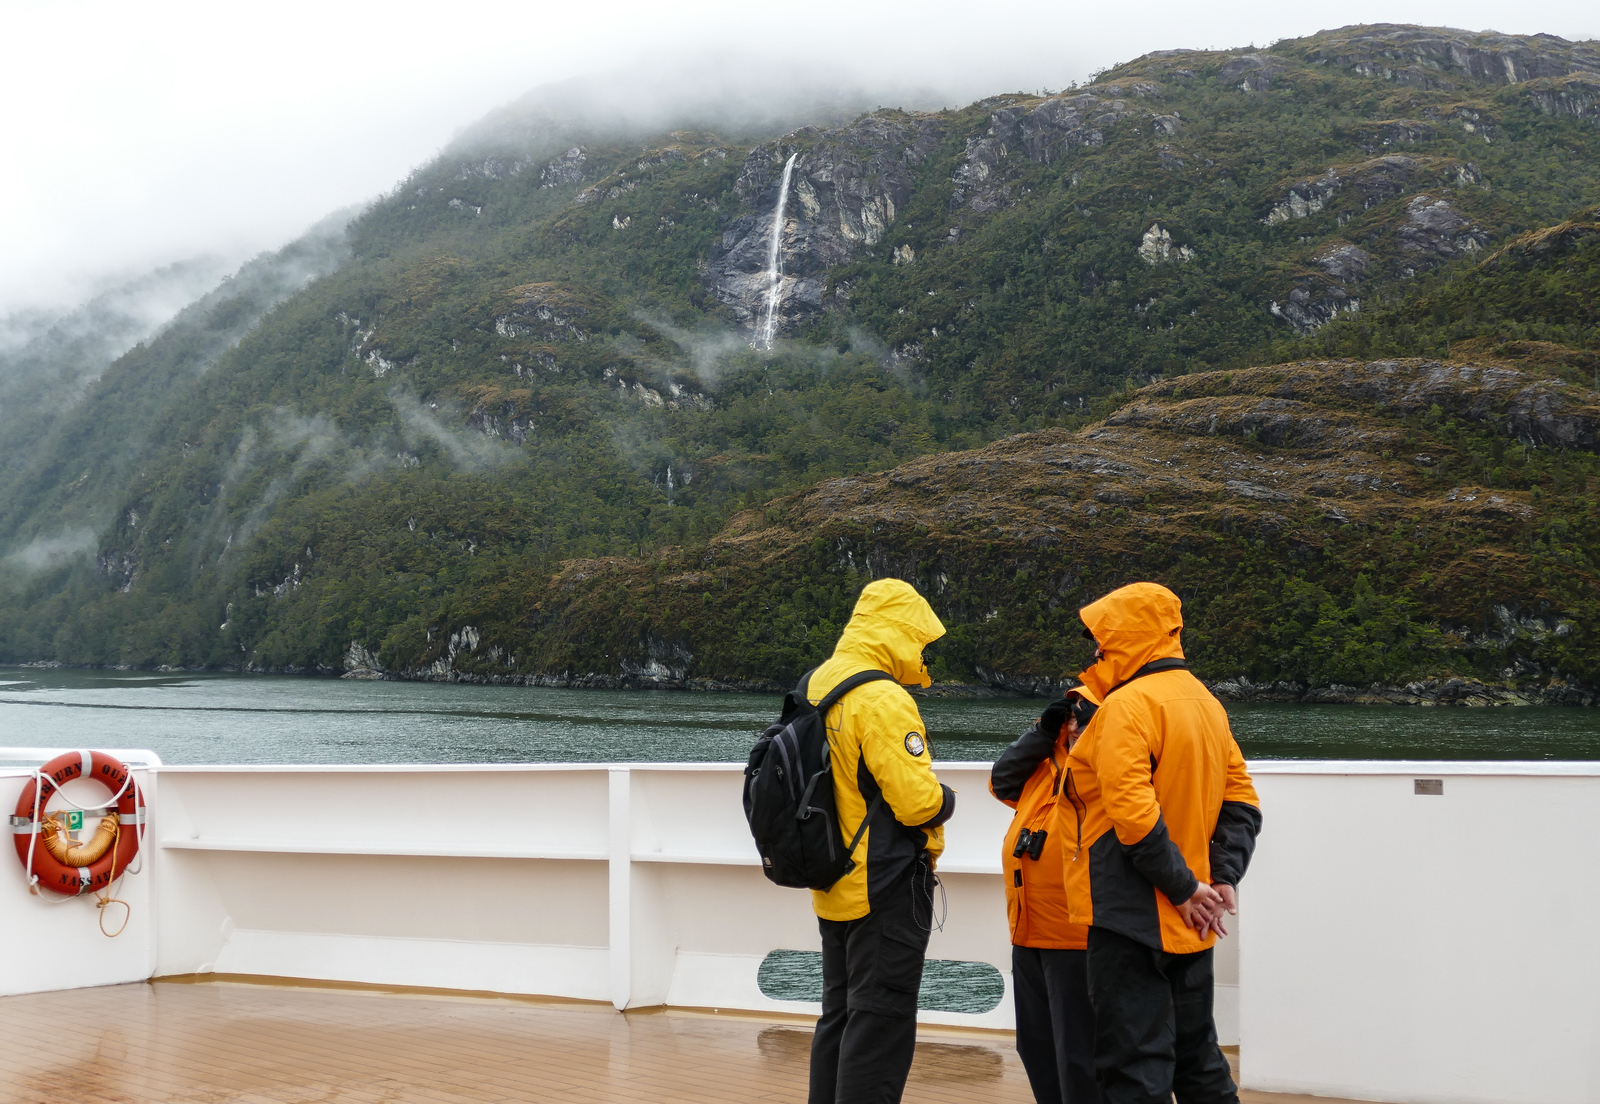 Seabourn guests wait to photograph El Brujo Glacier in Chile. It's part of the travel fun on a cruise through the Chilean fjords.